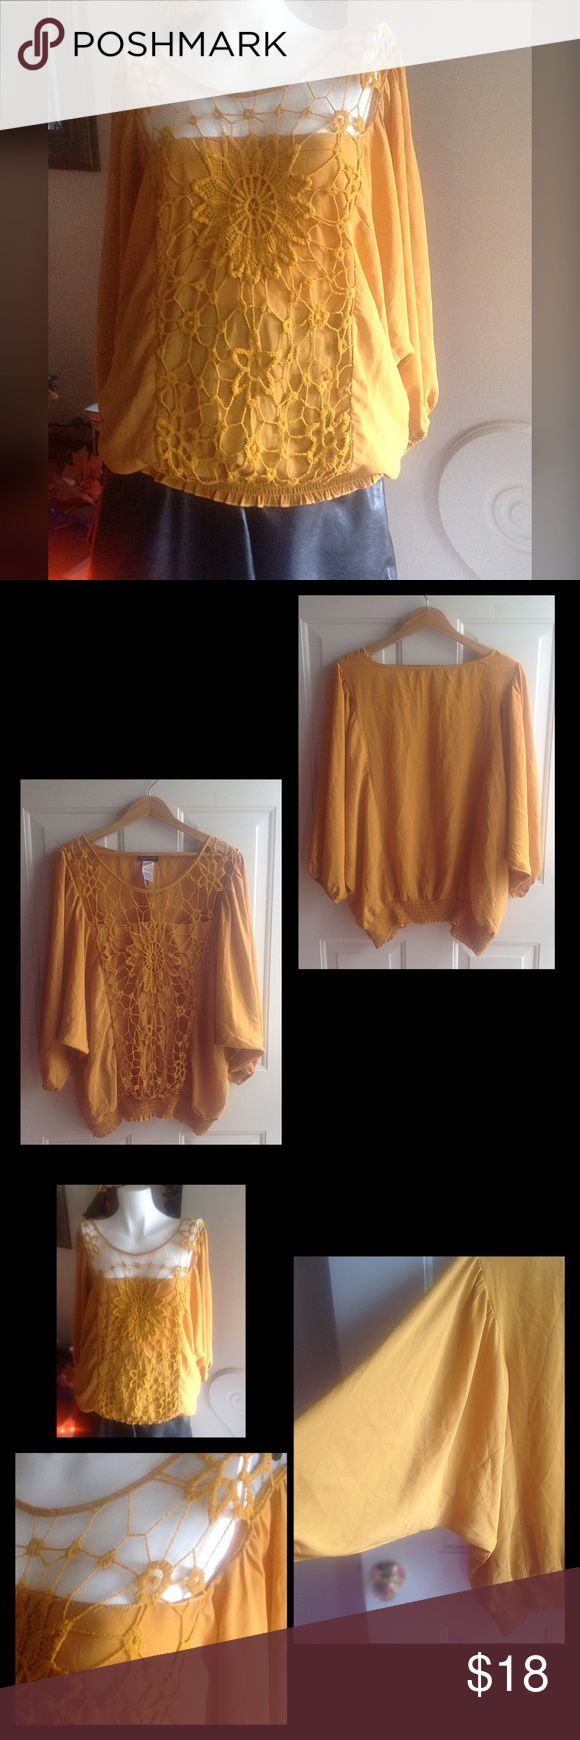 "Lovely blouse Mustard\honey gold color top. Gently worn. With knit detailing on the front. Batwing sleeves with elastic around waist of shirt. Size chart in last photo. From shoulder to bottom length is 26"". Please see small hole in the knit detailing in the front ( last photo). Price reflects imperfection. Tops"